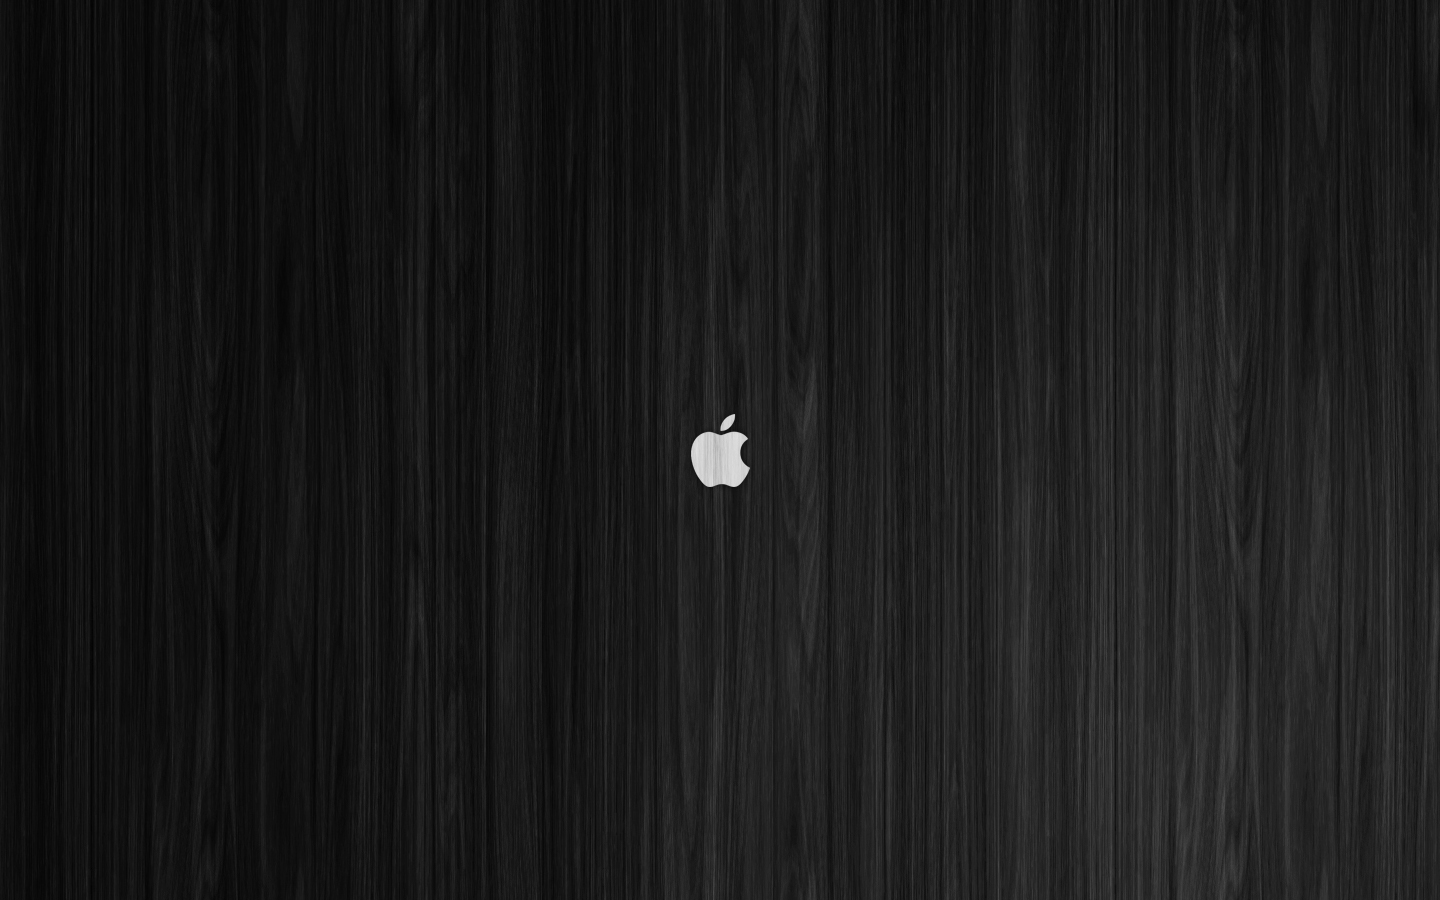 White Apple on Black Wood Mac Wallpaper by ZGraphx 1440x900